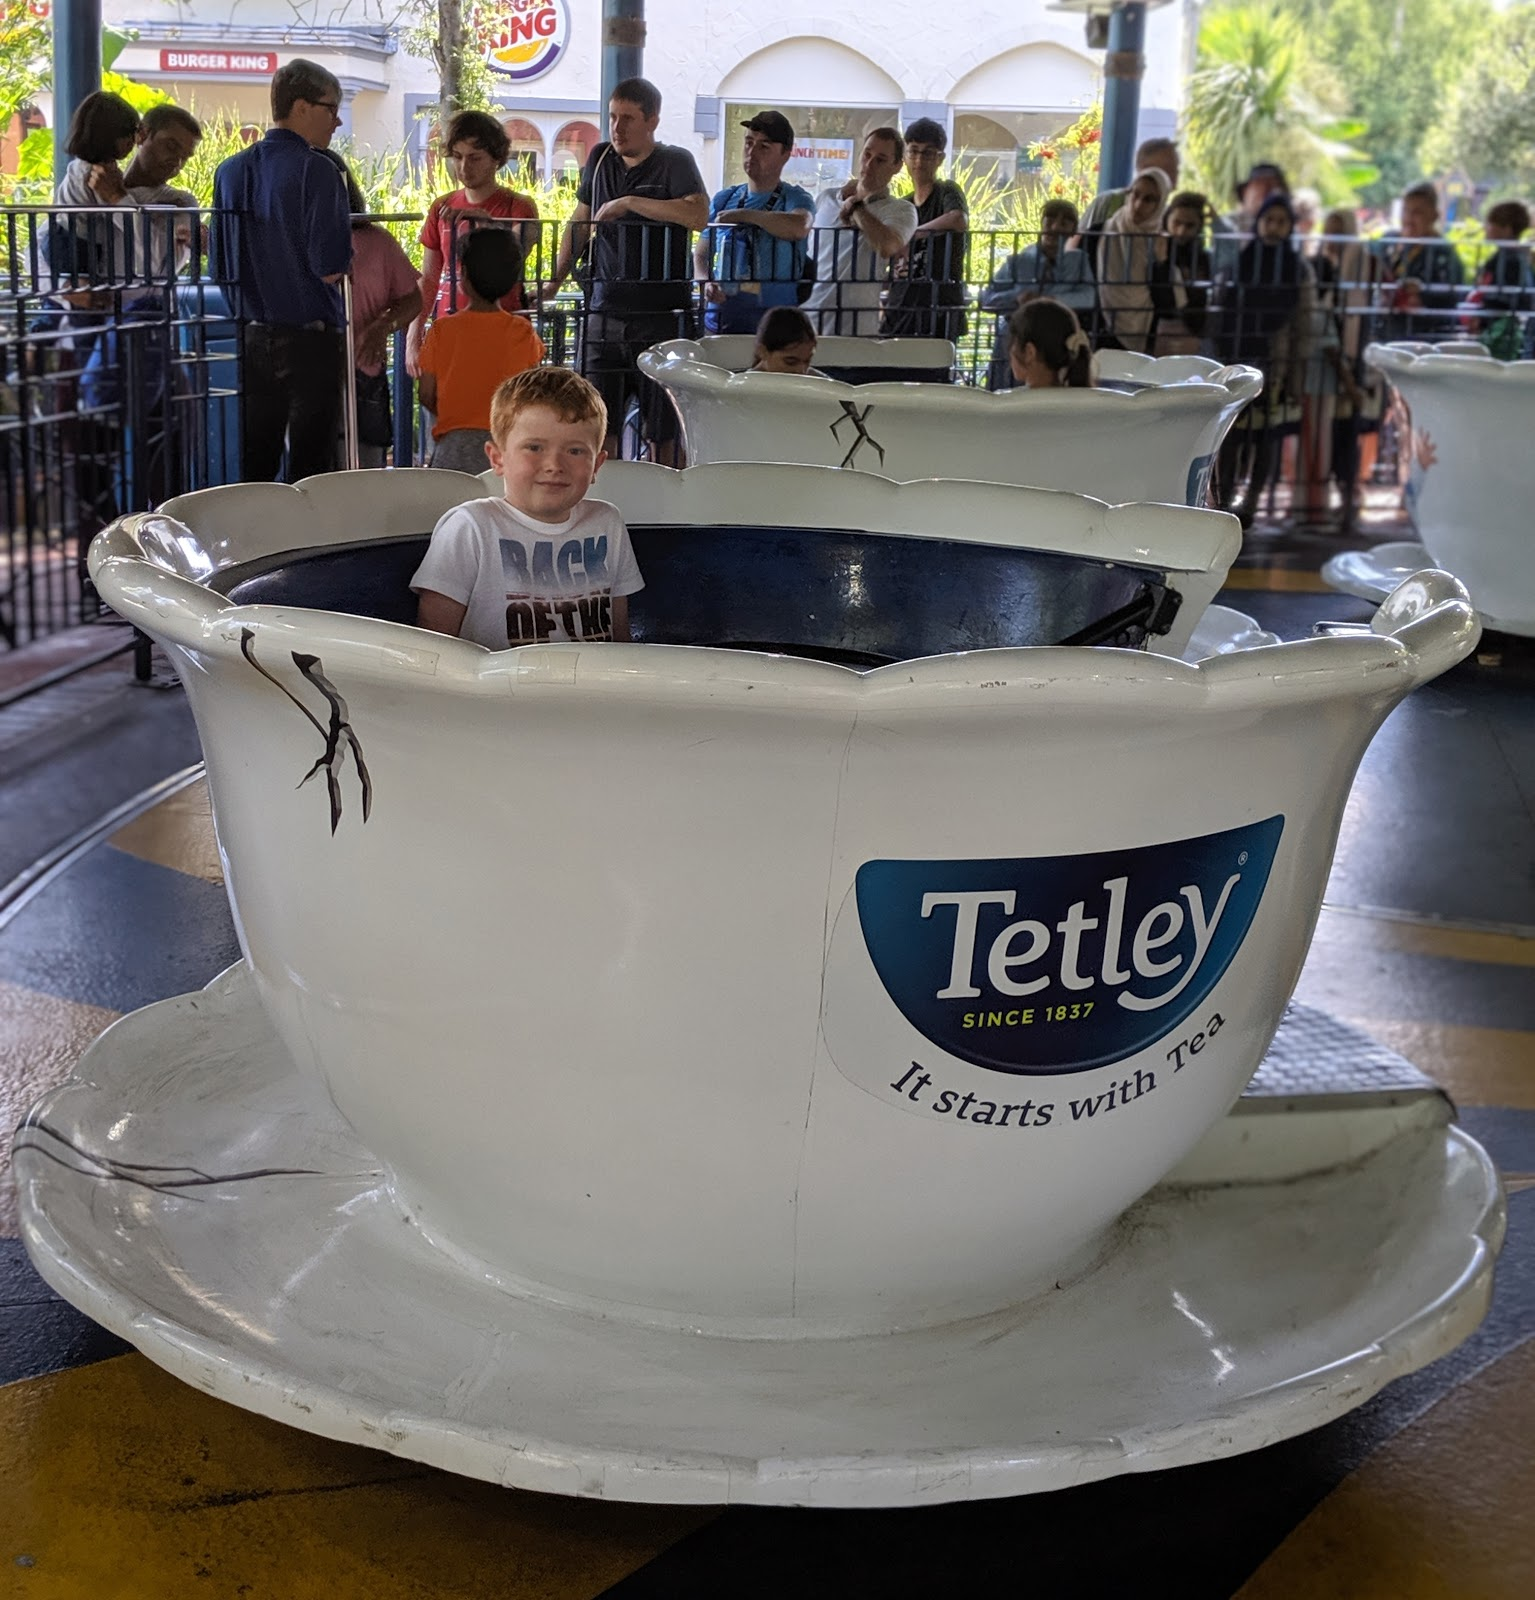 Exploring the Southern Merlin Theme Parks with Tweens  - Teacups at Thorpe Park